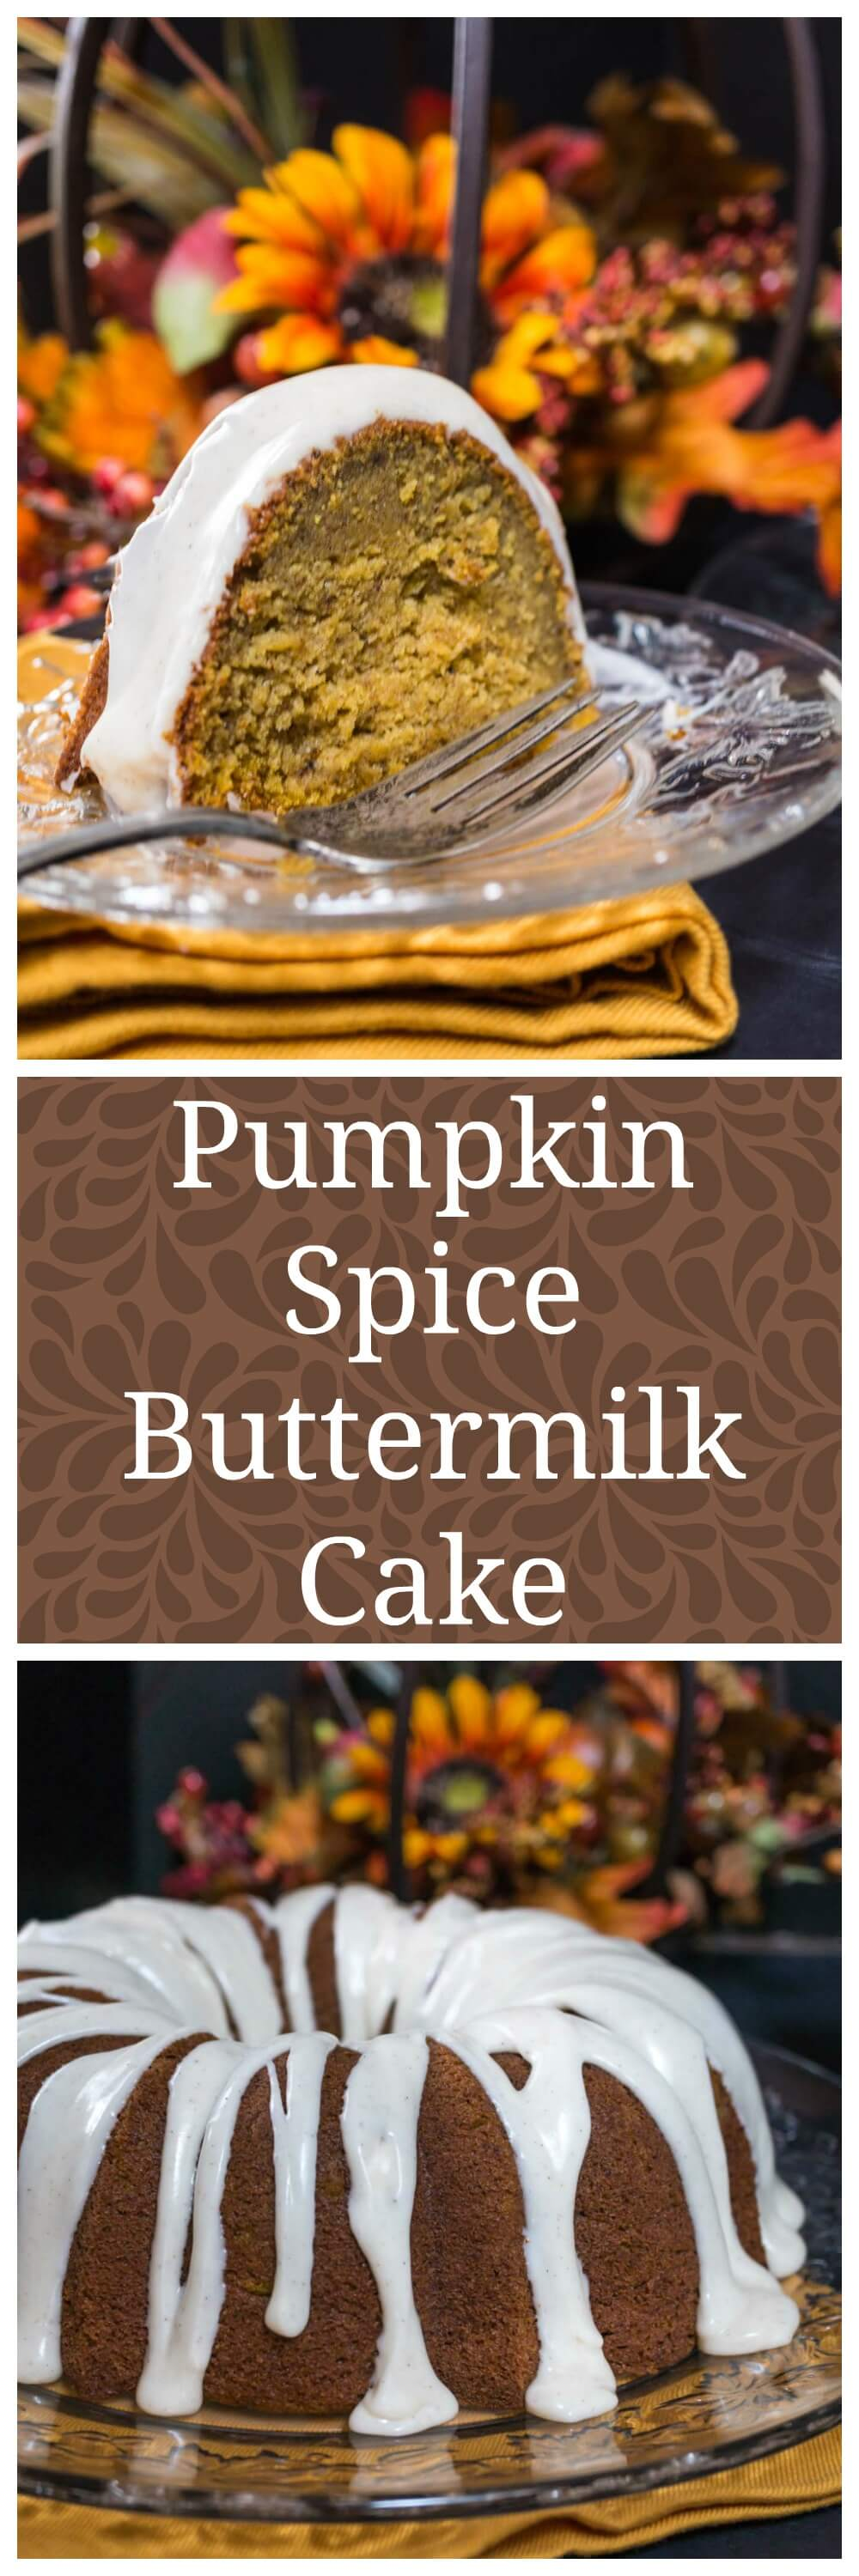 Pumpkin Spice Buttermilk Cake with a warm Cinnamon Cream Cheese icing is perfect for Fall entertaining, Holidays or any occasion.